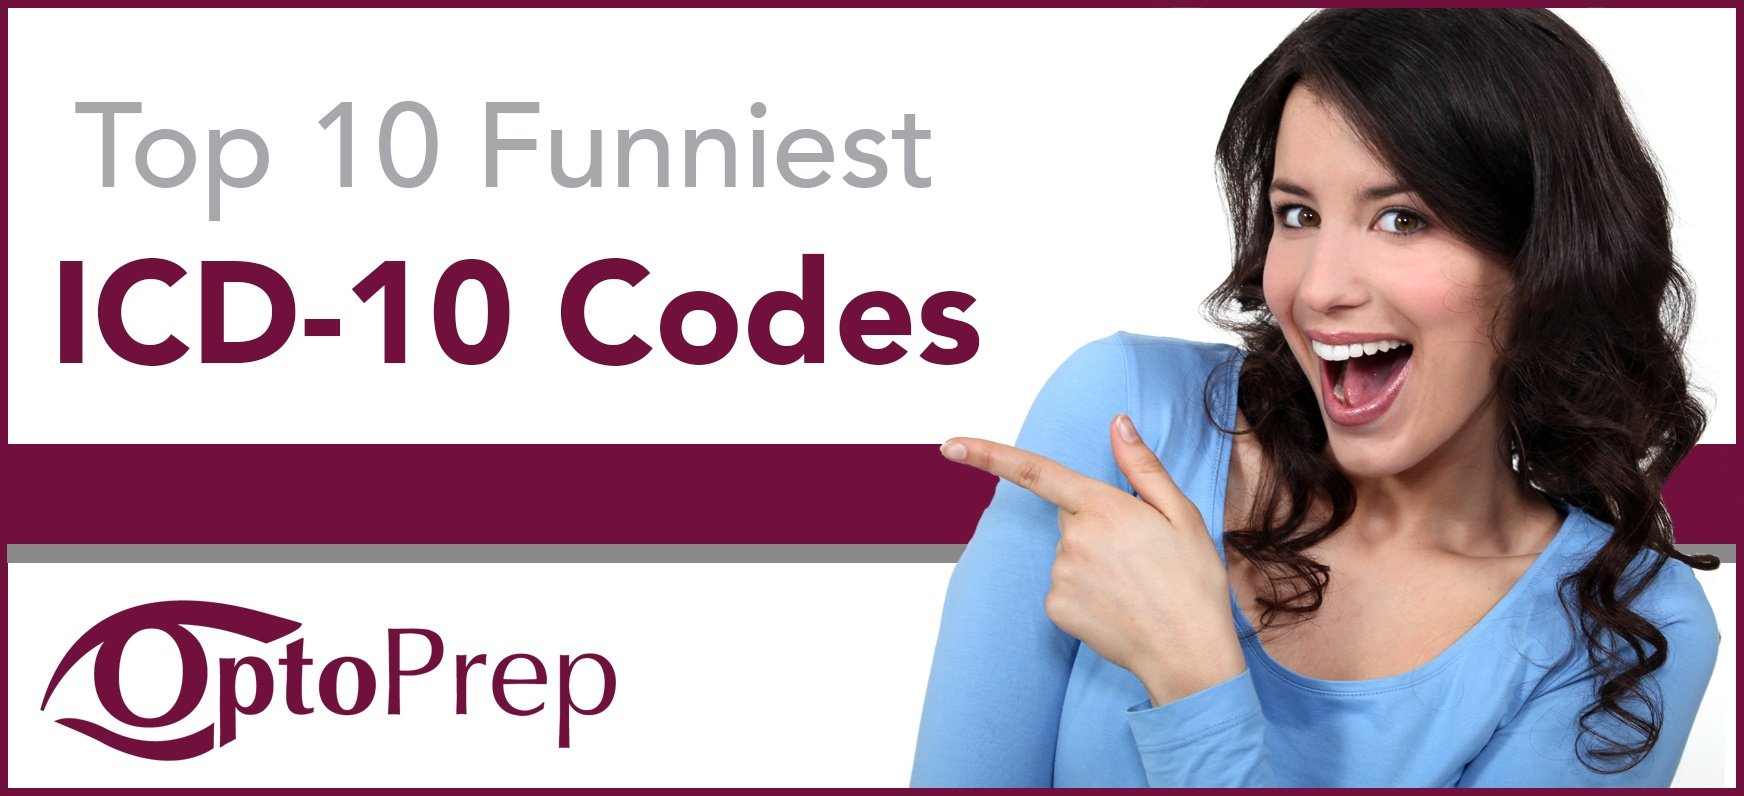 Top 10 Funniest Icd